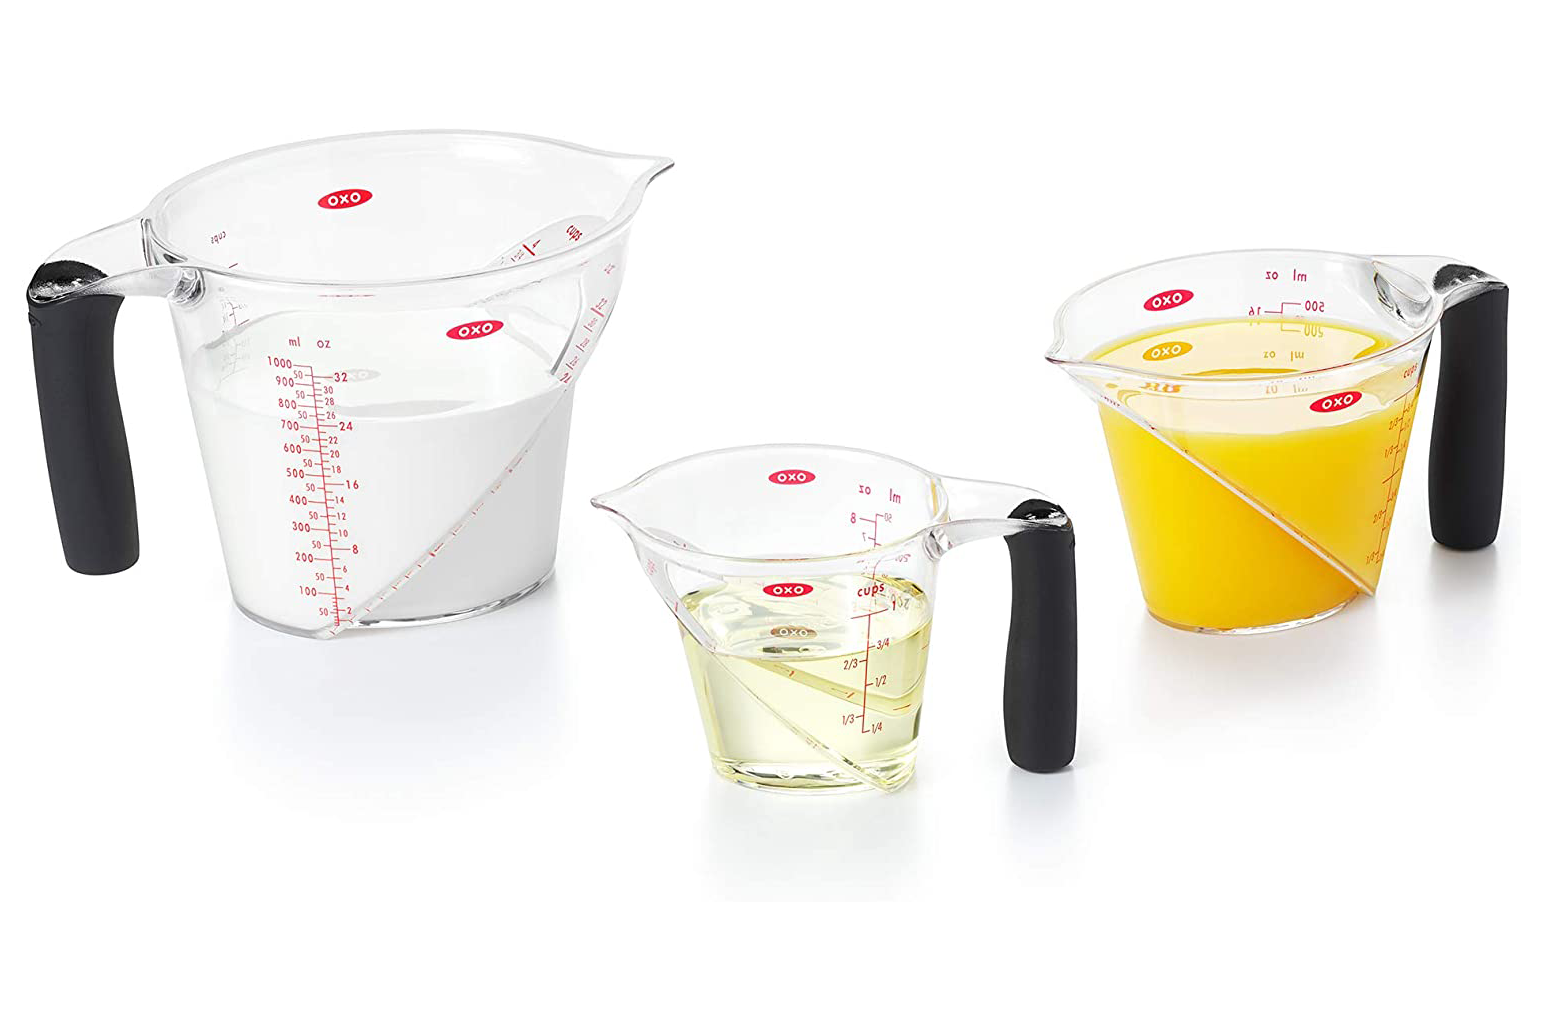 OXO Good Grips 3-Piece Angled Measuring Cup Set on a white background